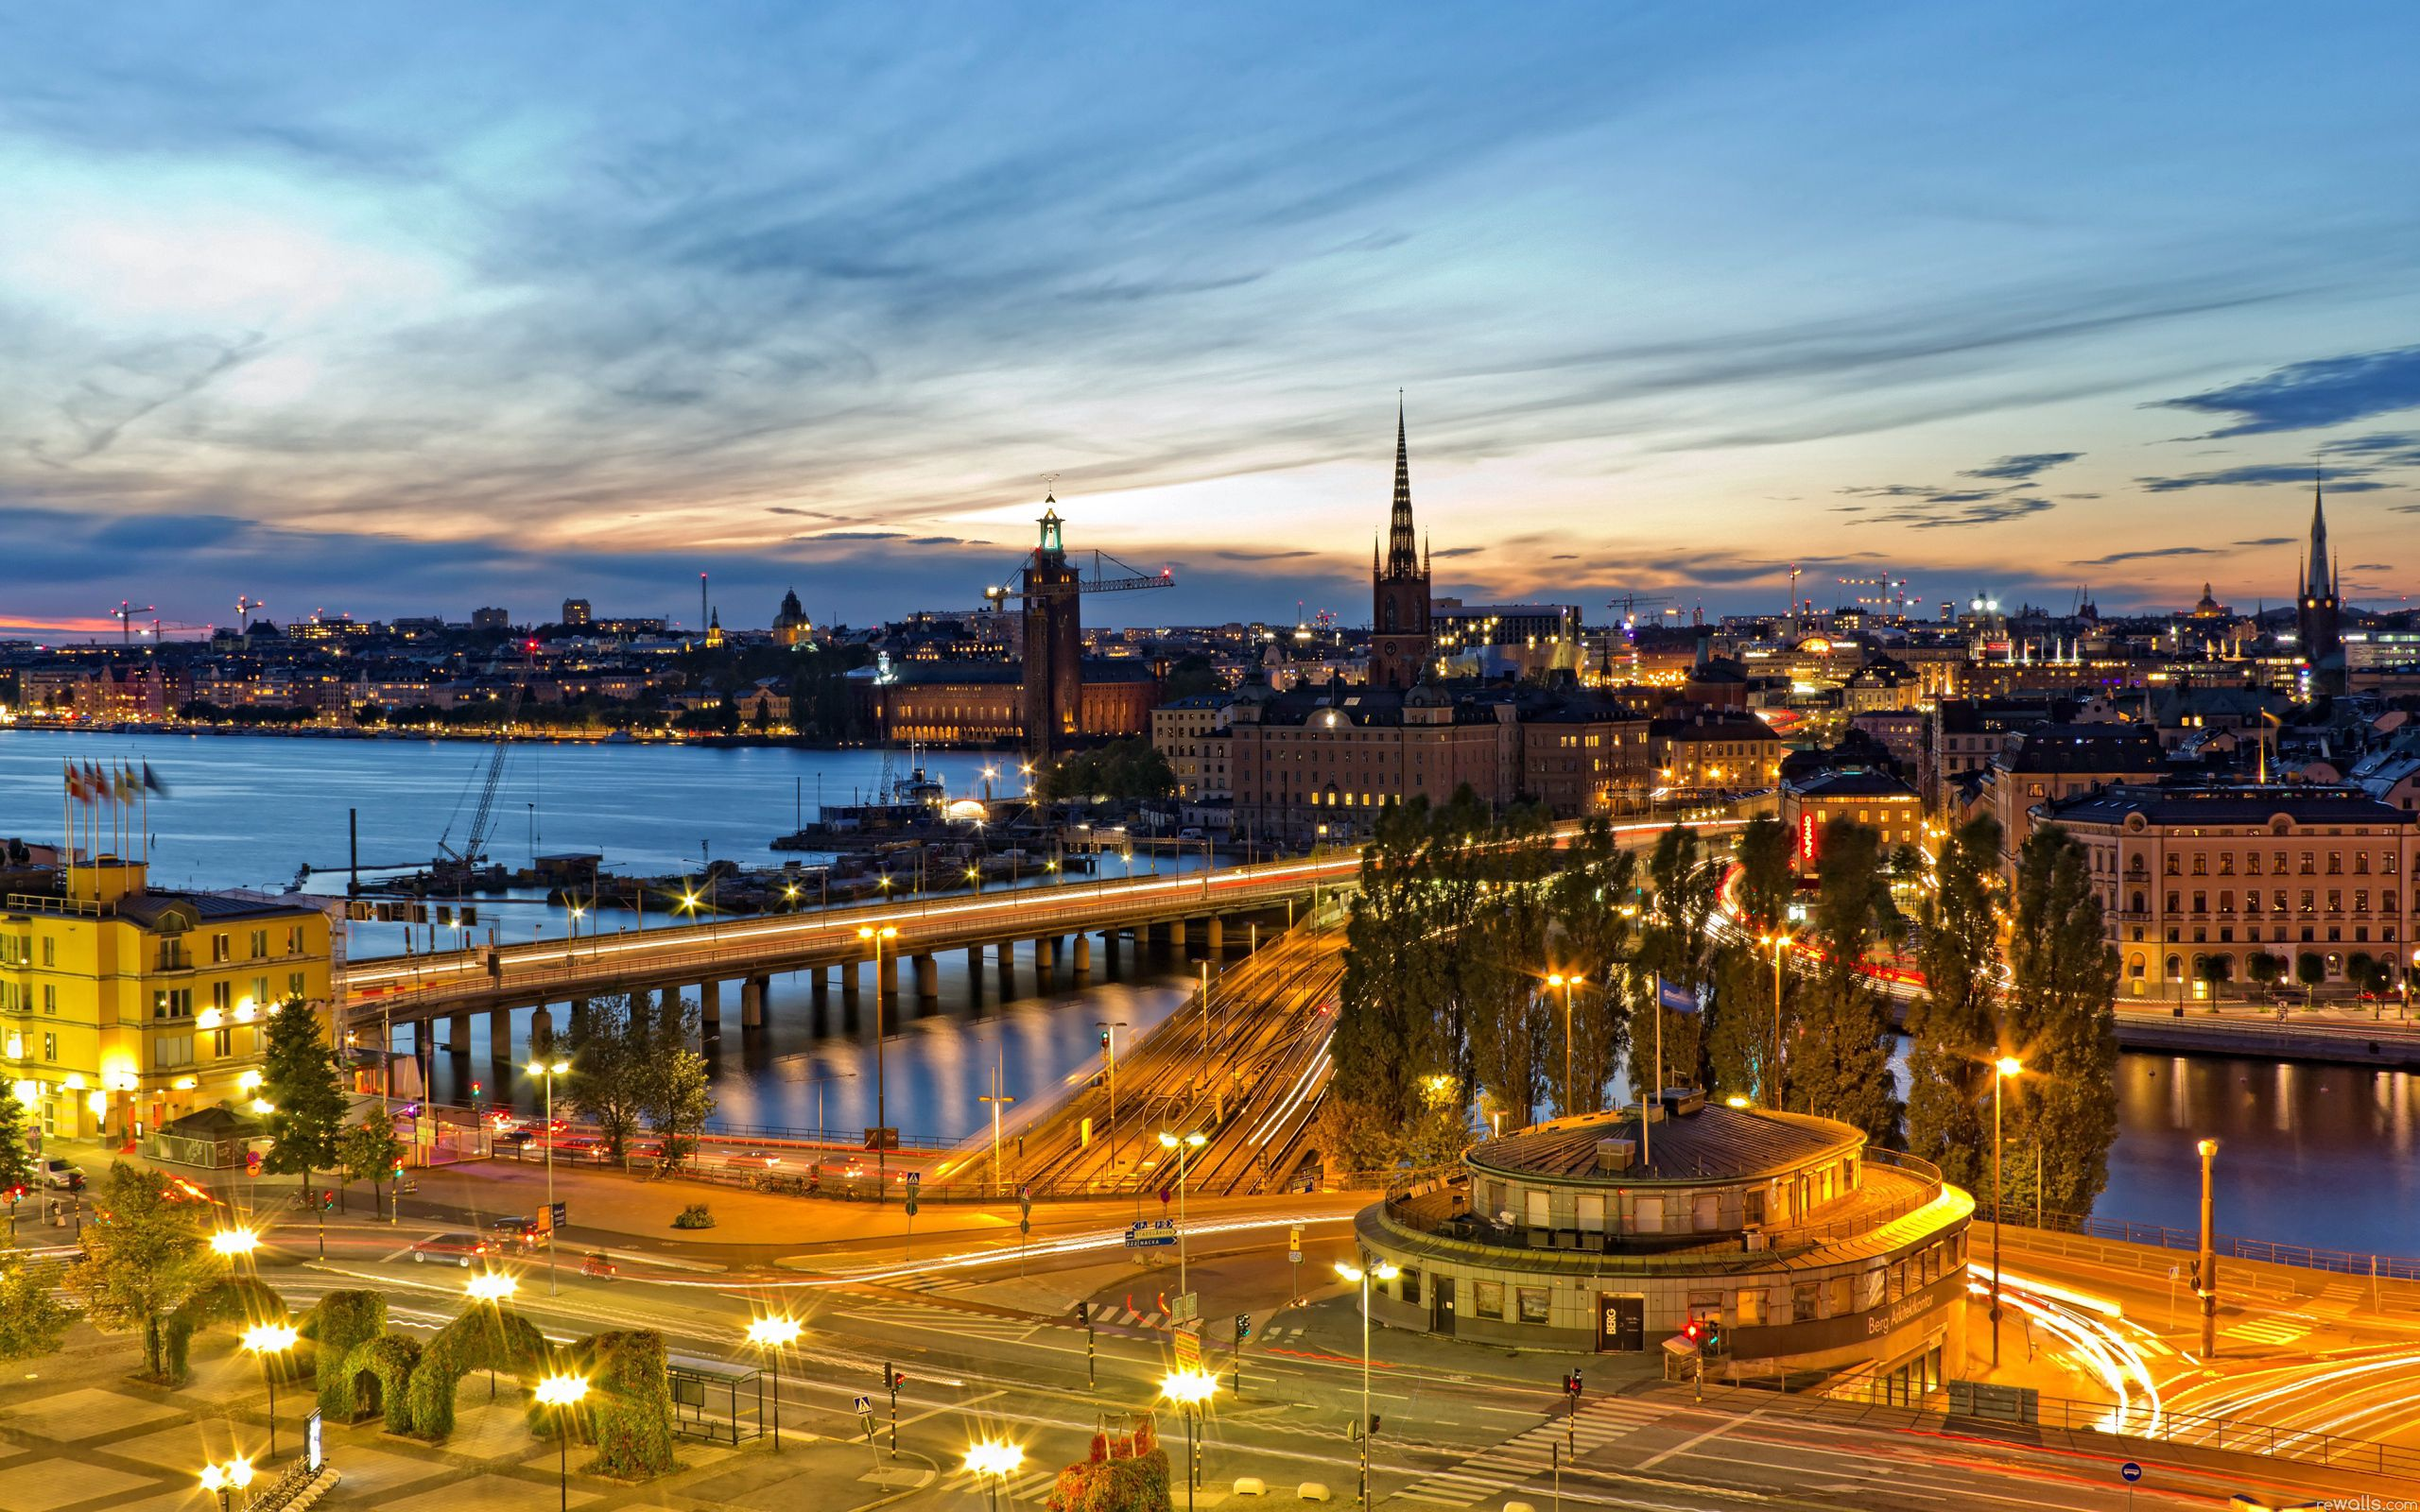 117433 free wallpaper 720x1520 for phone, download images Cities, City Lights, Evening, Stockholm, Sweden 720x1520 for mobile